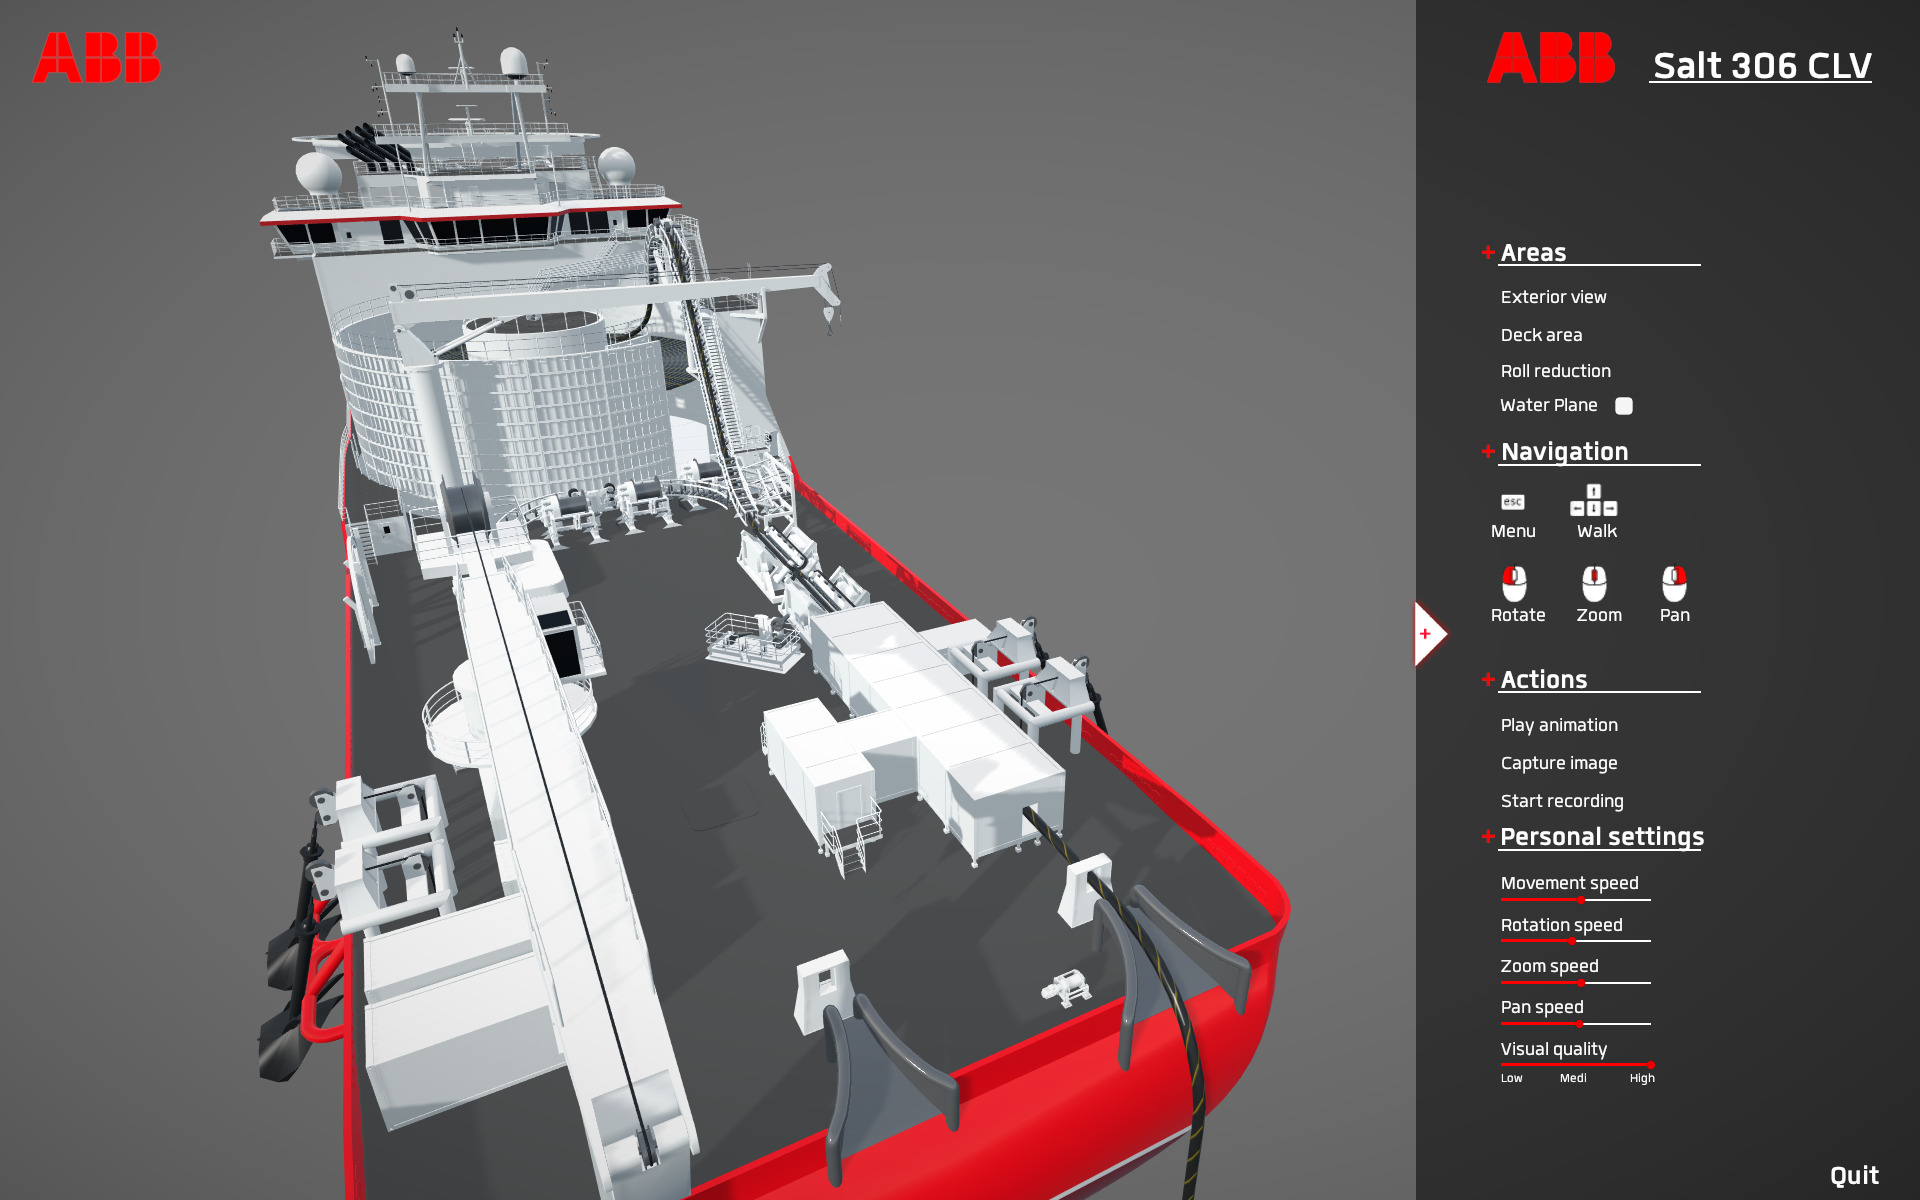 The exterior view of the ship. The user can zoom pan and rotate freely.